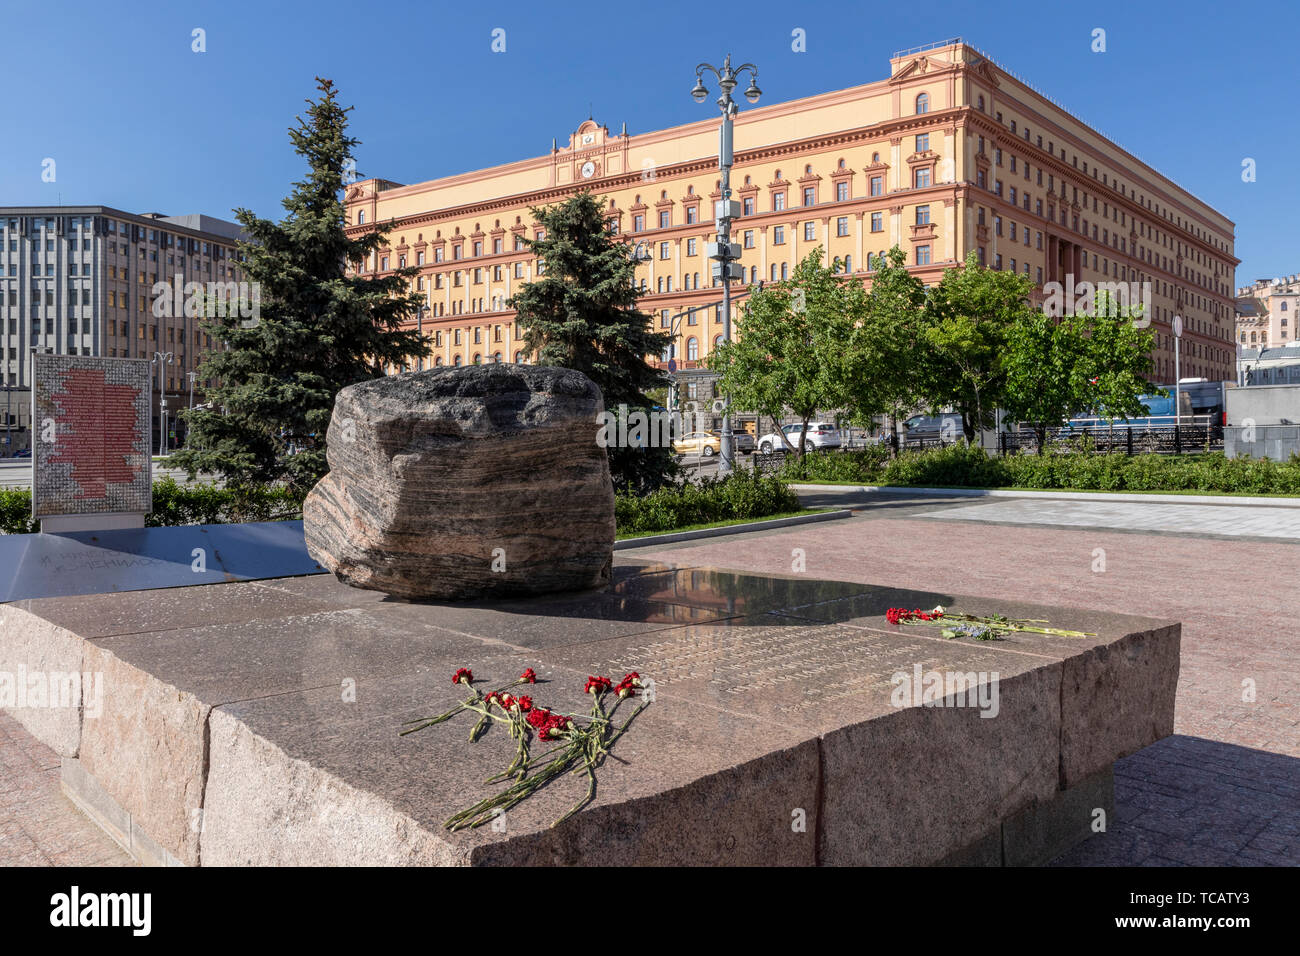 Solovetsky Stone commemorating Soviet era gulag & deportations with the notorious ex-KGB & NKVD headquarters beyond on Lubyanka Square, Moscow, Russia - Stock Image